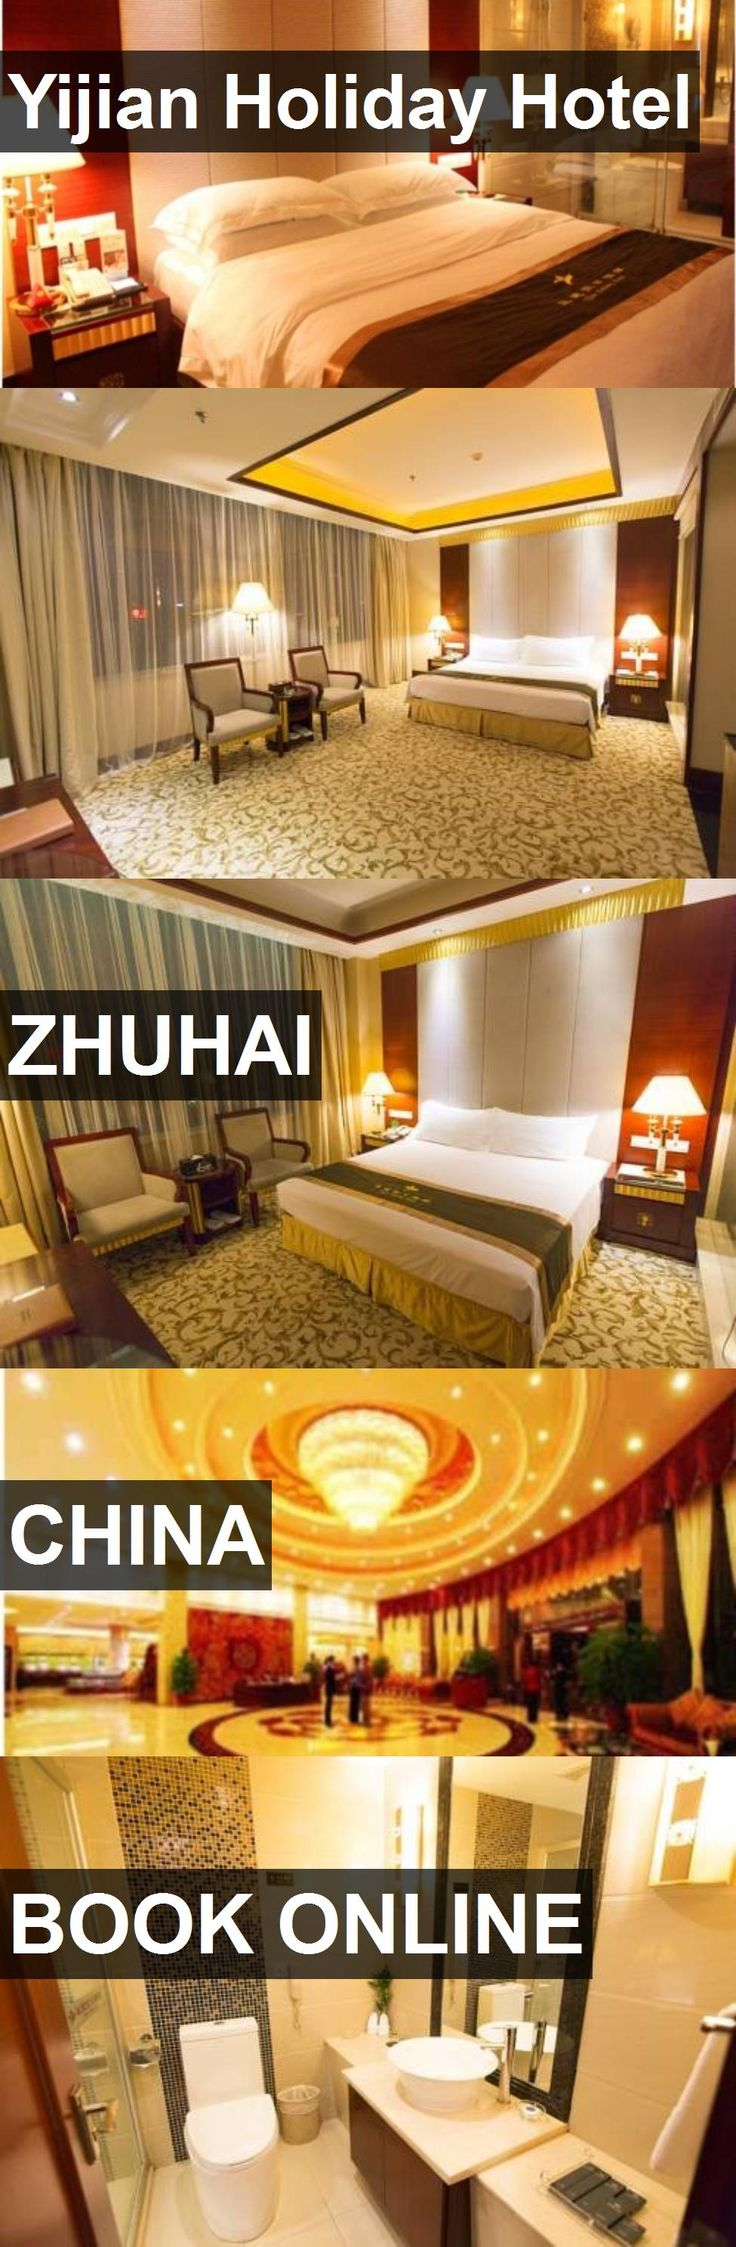 Yijian Holiday Hotel in Zhuhai, China. For more information, photos, reviews and best prices please follow the link. #China #Zhuhai #travel #vacation #hotel